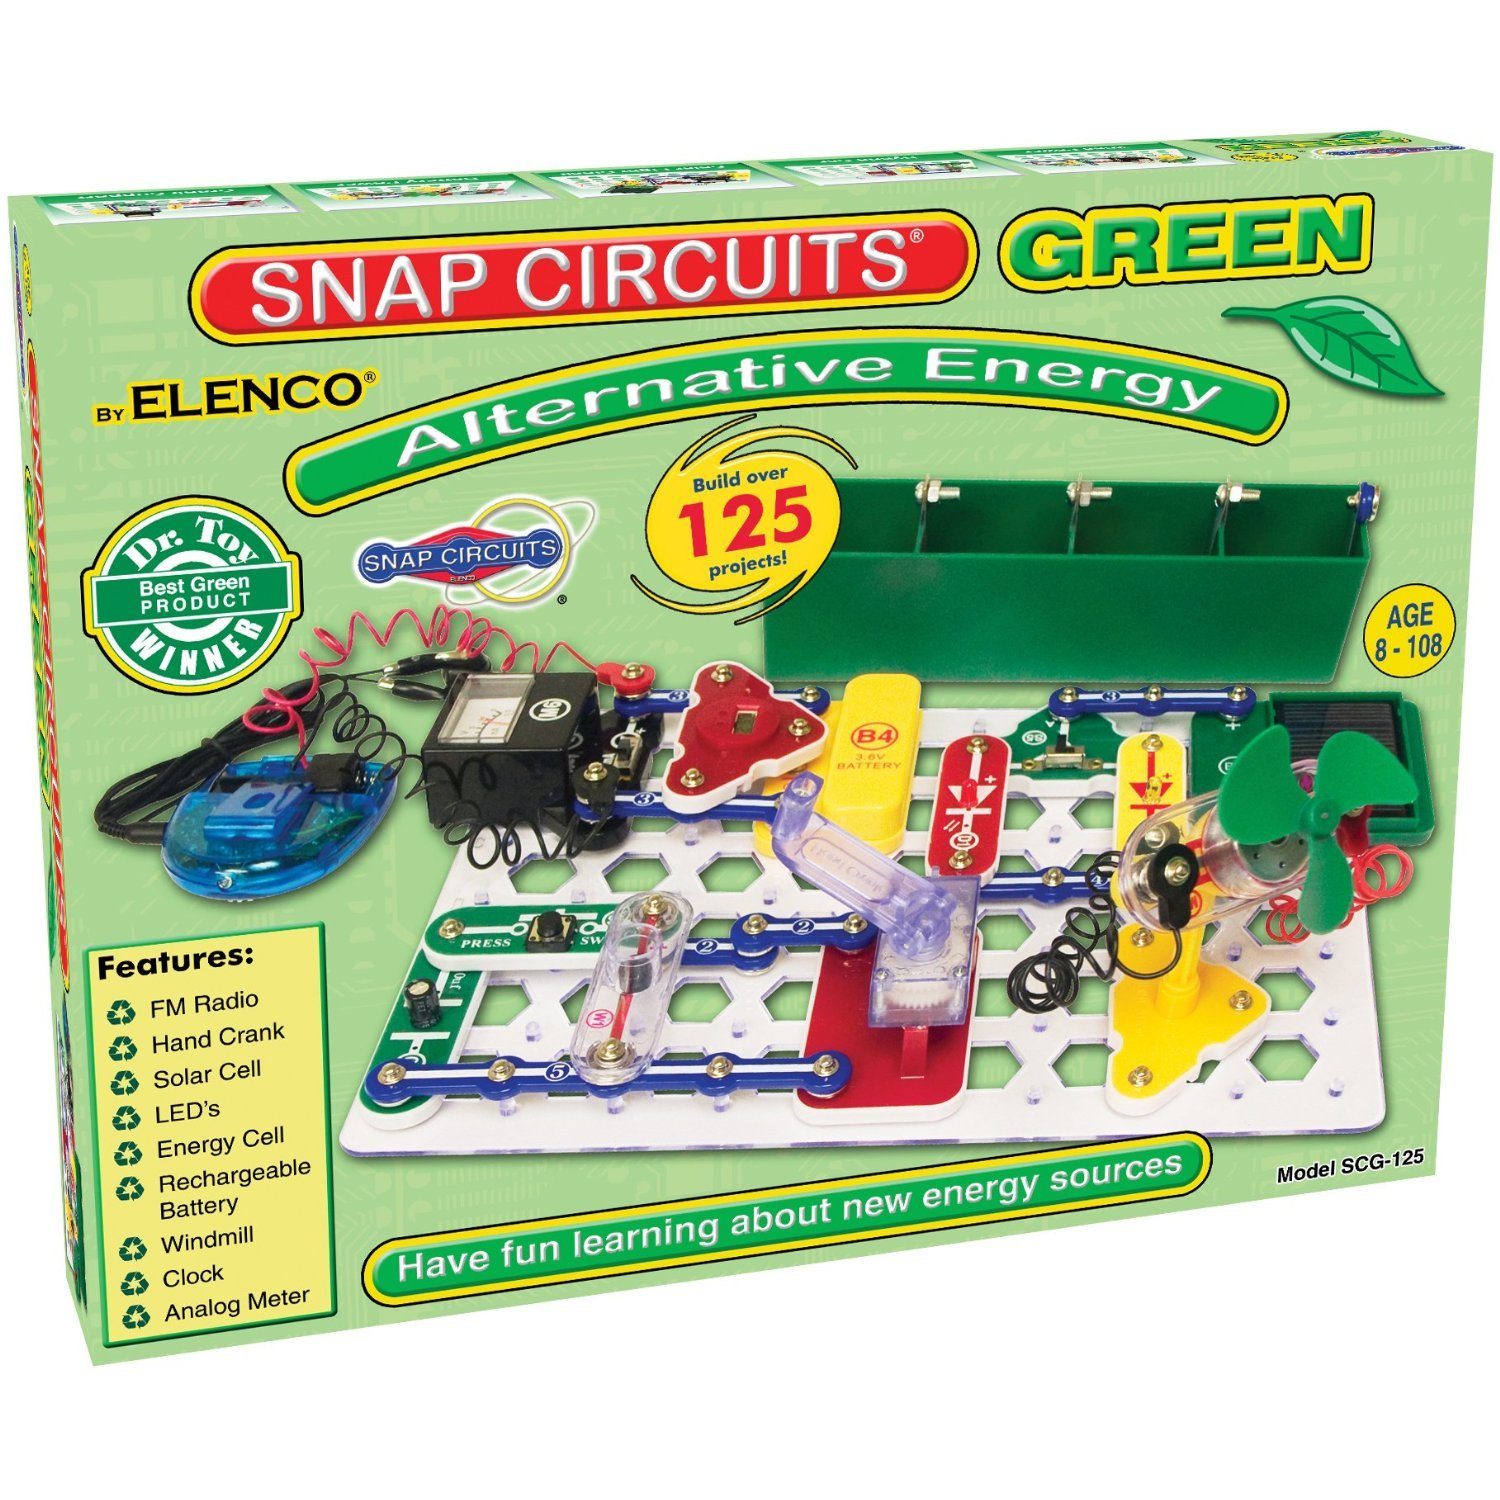 Snap Circuits Alternative Energy Green Electronics Amazoncom Diy Circuit Board 3d Plastic Case For Samsung Galaxy Note2 Exploration In Kit Over 125 Stem Projects 4 Color Project Manual 40